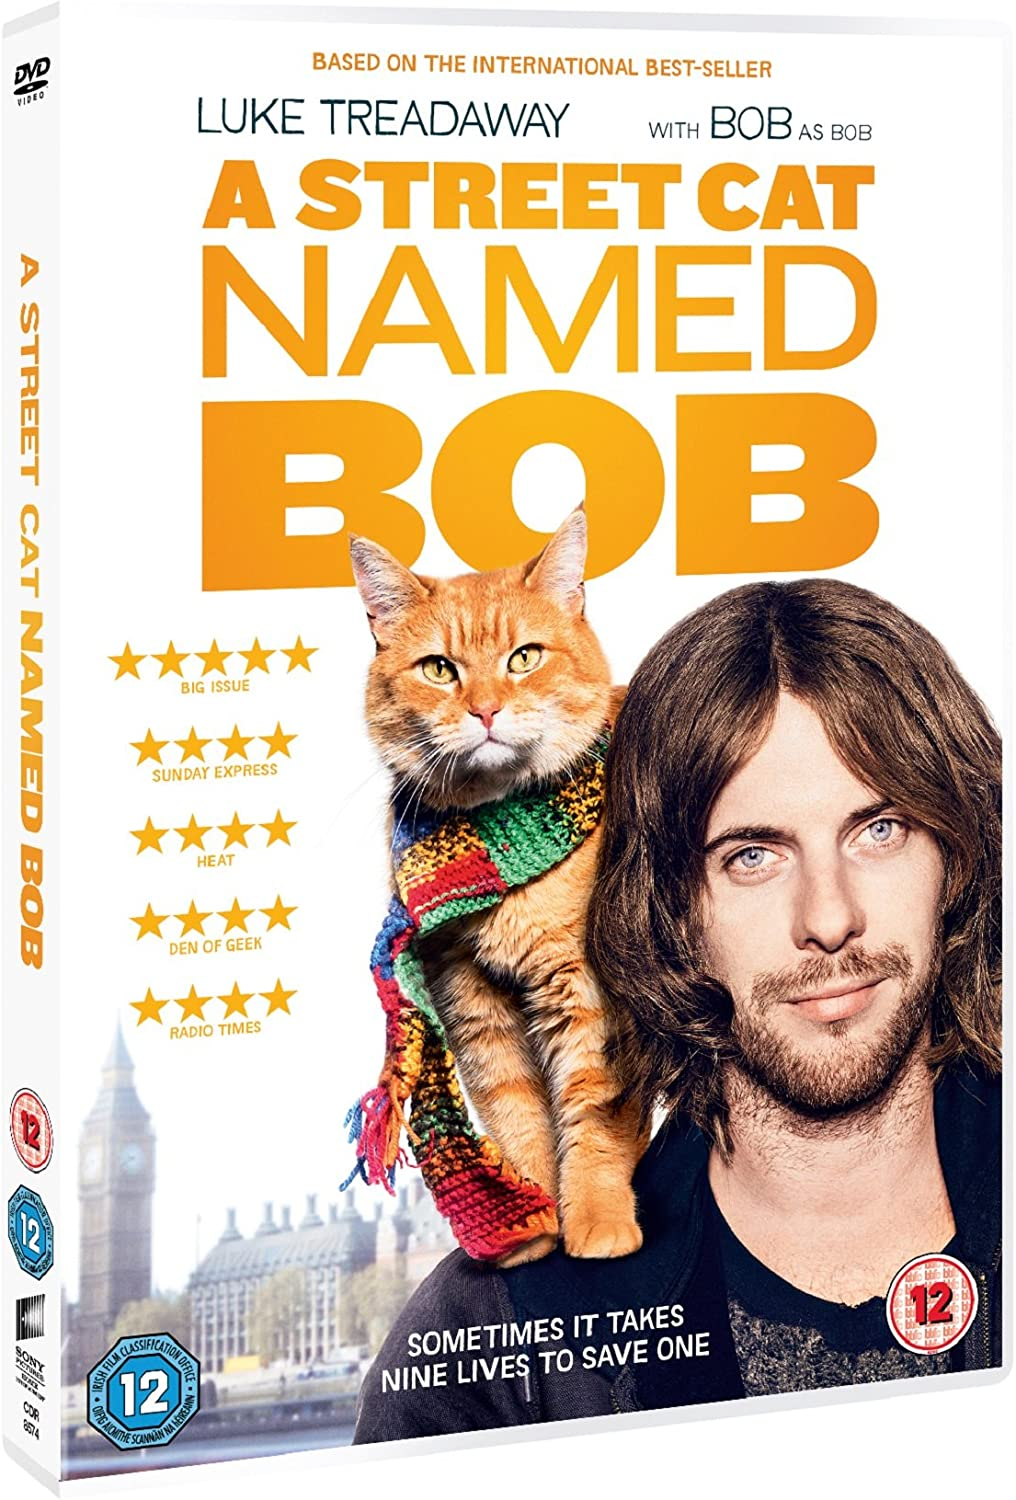 A Street Cat Named Bob Dvd 2016 Amazon Co Uk Luke Treadaway Ruth Gedmintas Joanne Froggatt Roger Spottiswoode Luke Treadaway Ruth Gedmintas Dvd Blu Ray